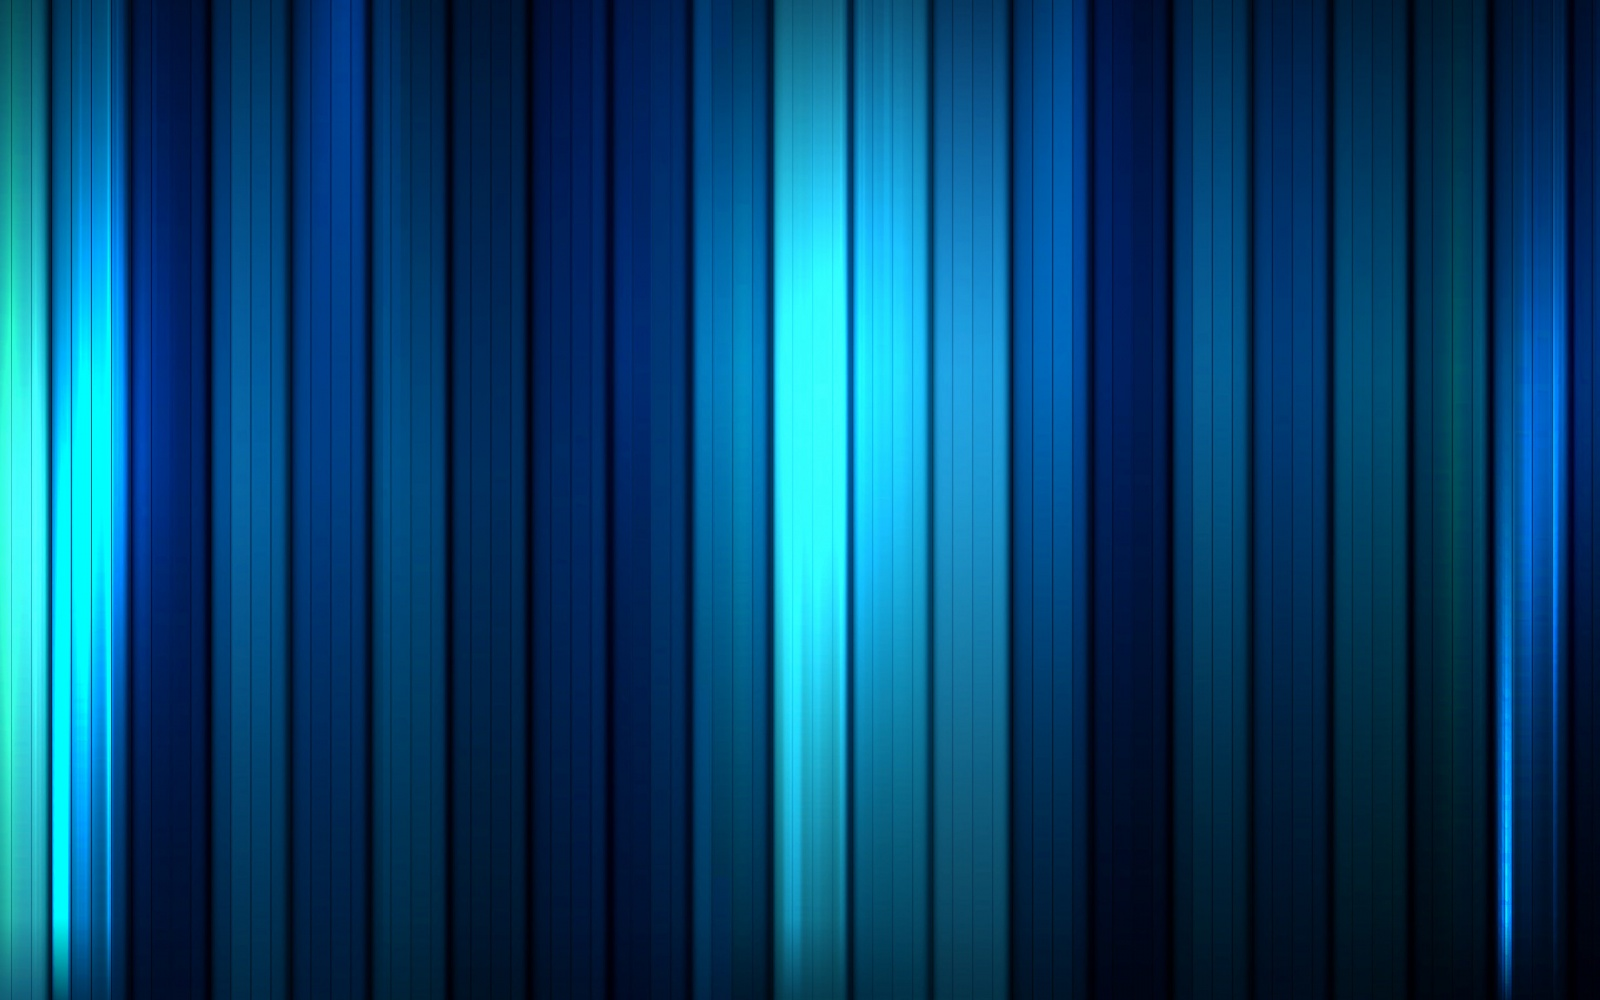 69 4k Blue Wallpaper Backgrounds That Will Give Your Desktop Perfect Readability